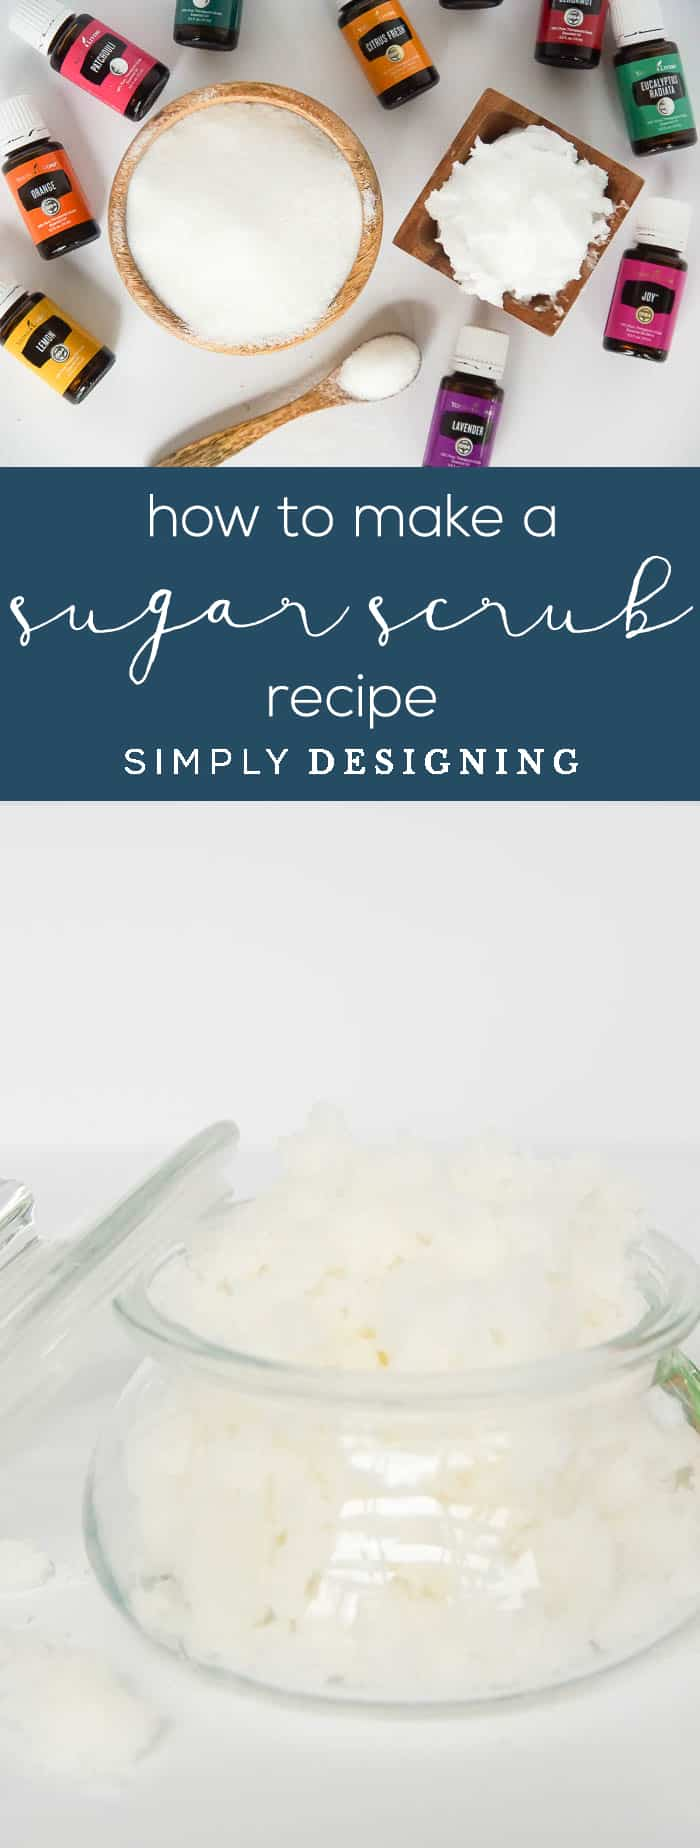 How to make a Sugar Scrub Recipe